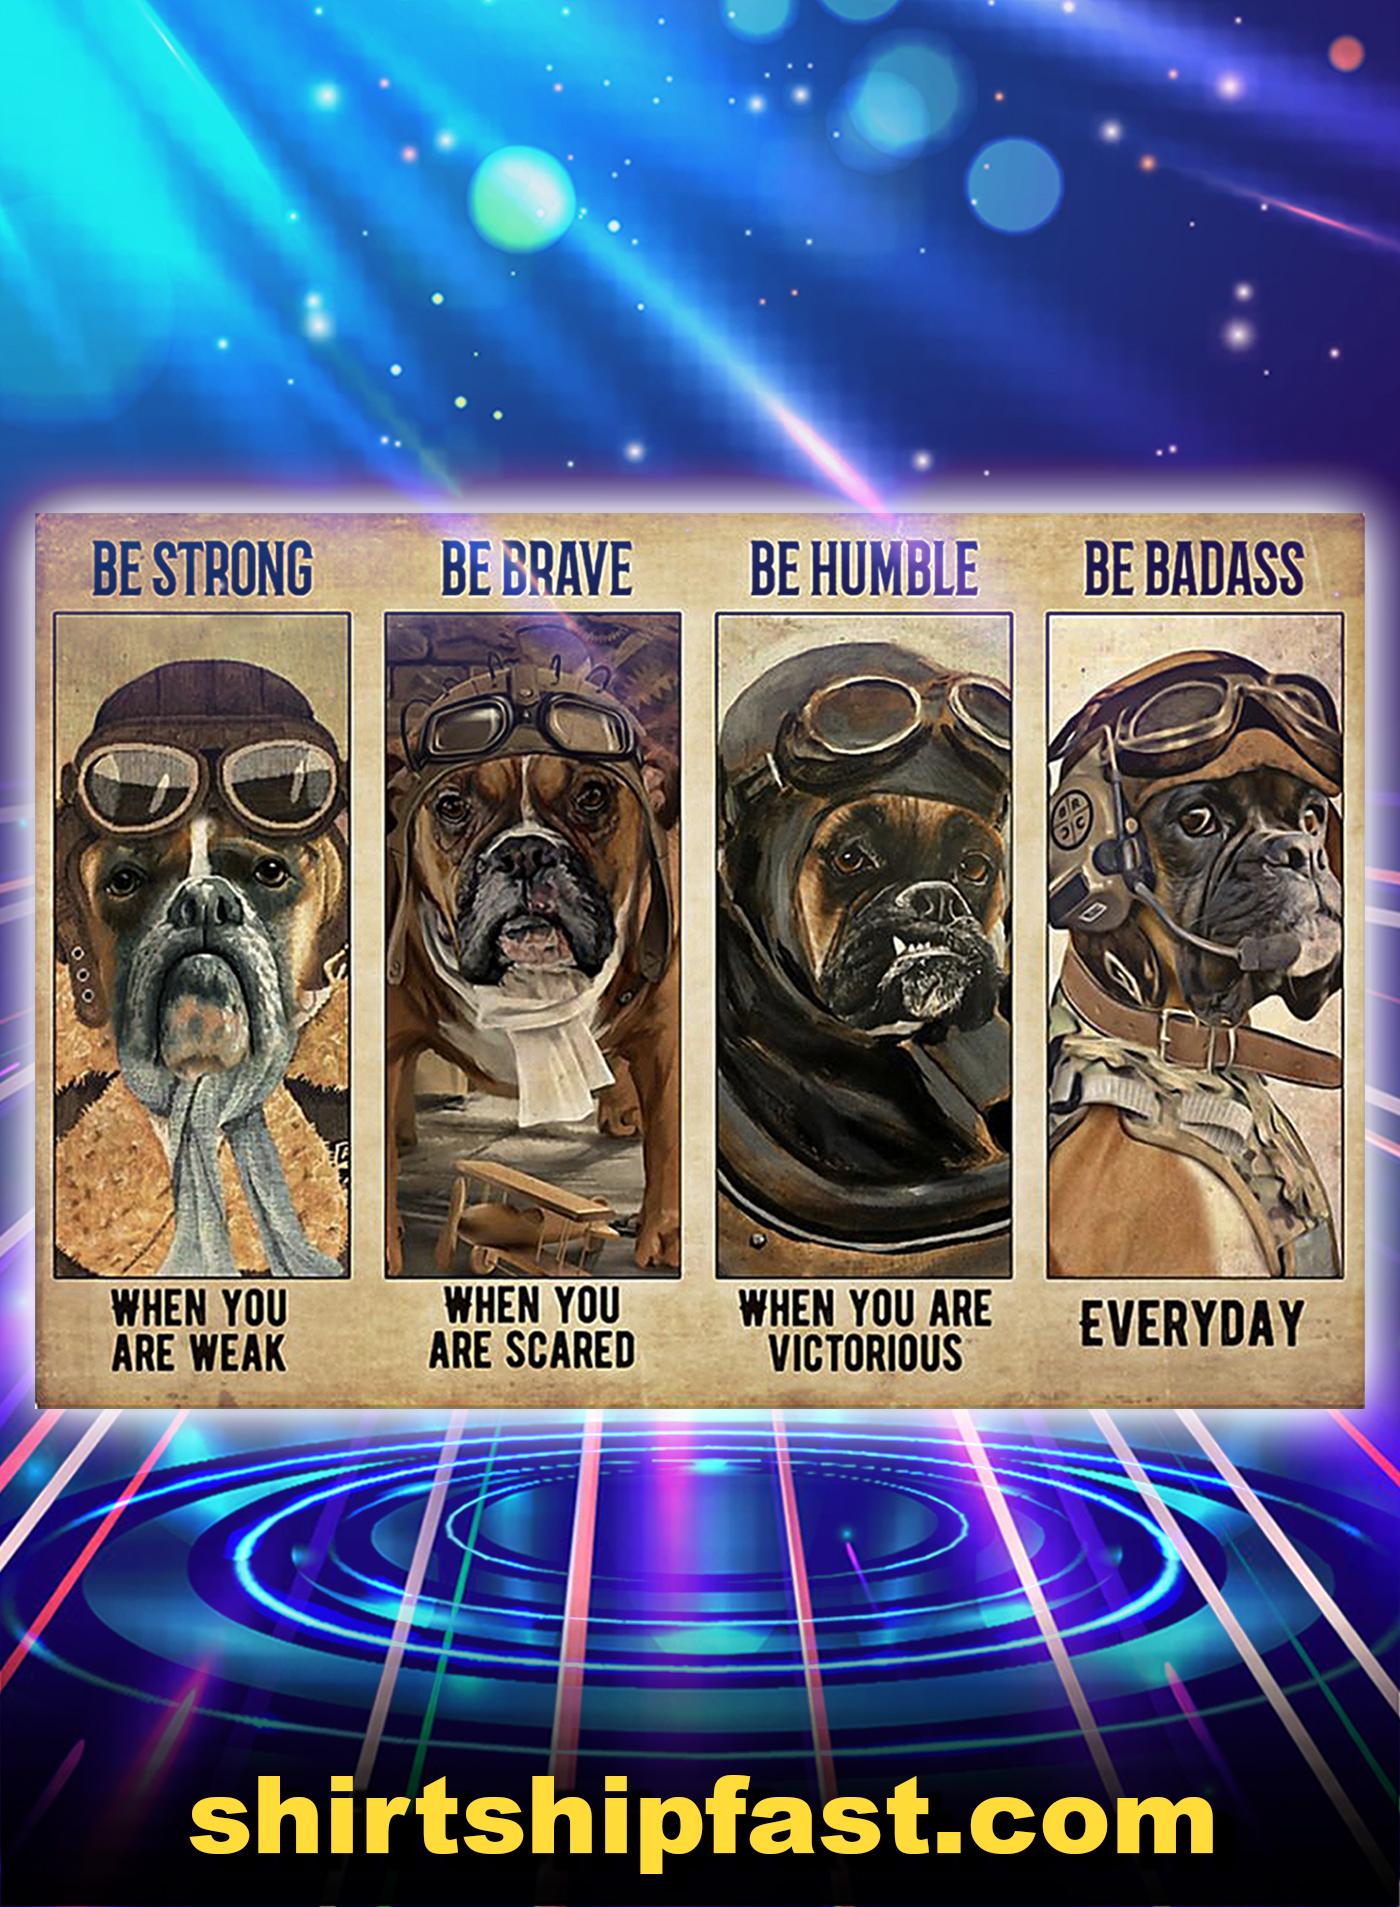 BOXER PILOT BE STRONG BE BRAVE BE HUMBLE BE BADASS POSTER - A1